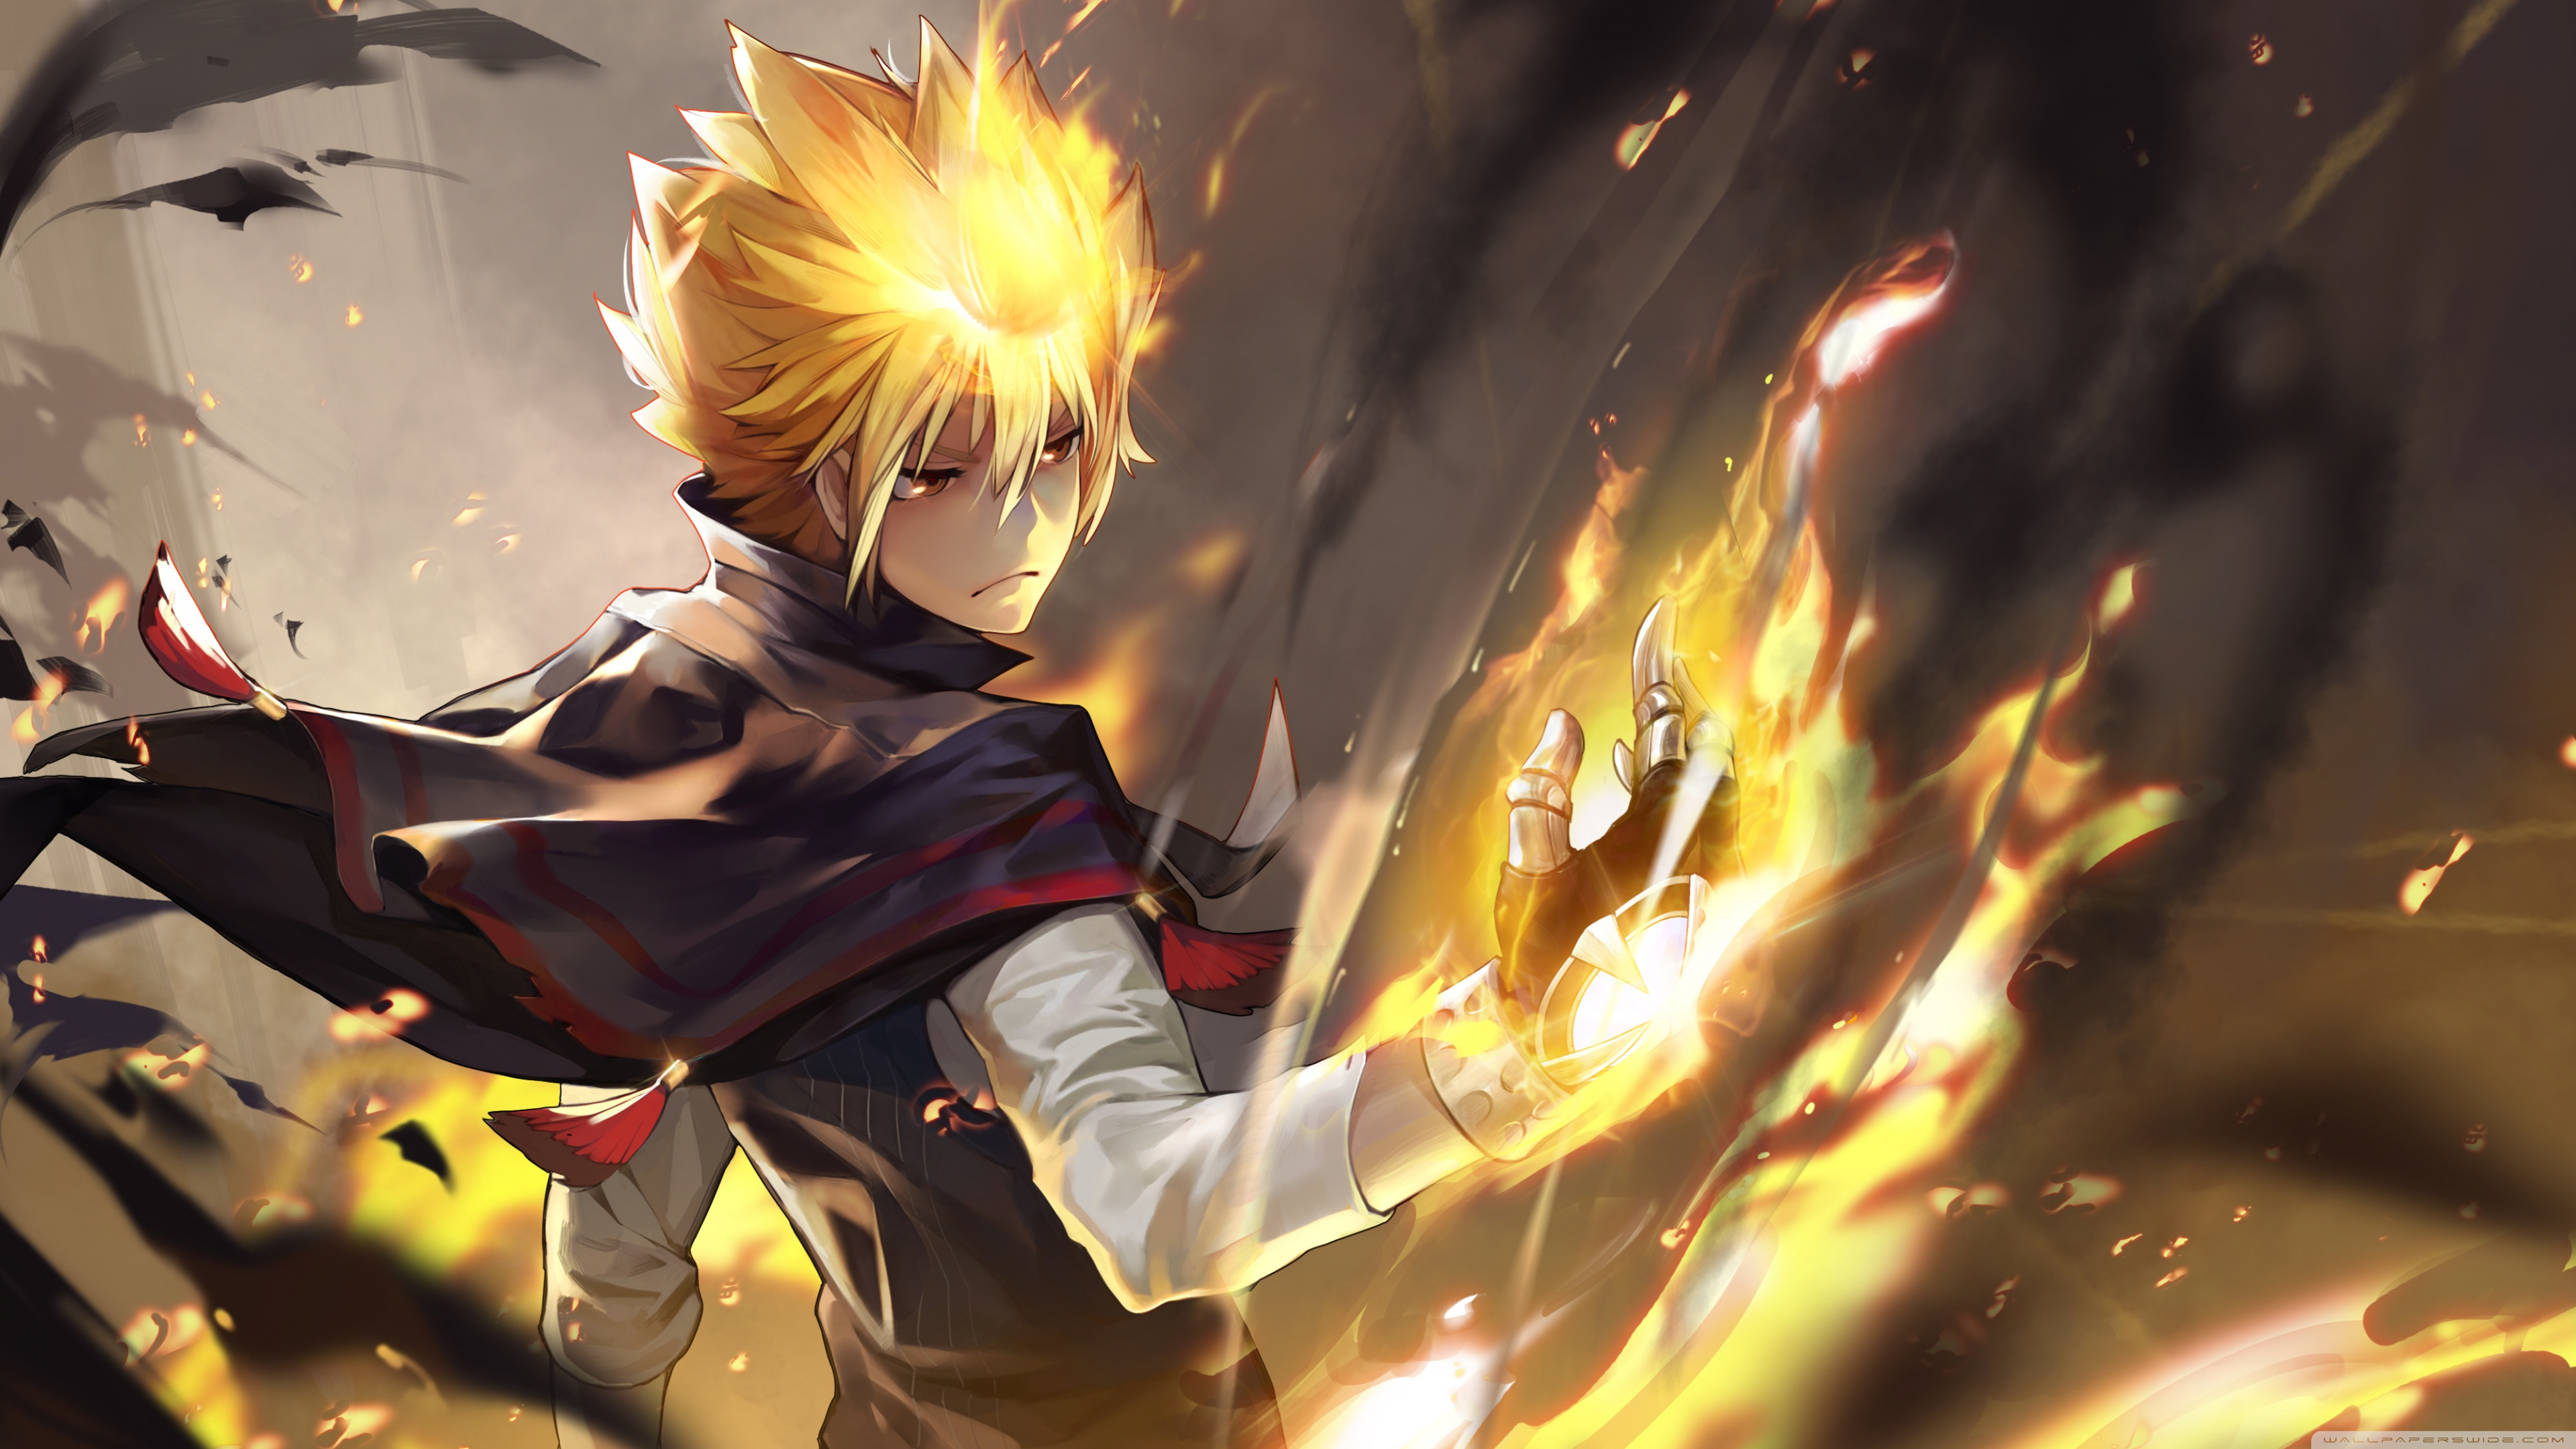 Ultra Hd Anime Wallpaper Posted By Christopher Thompson